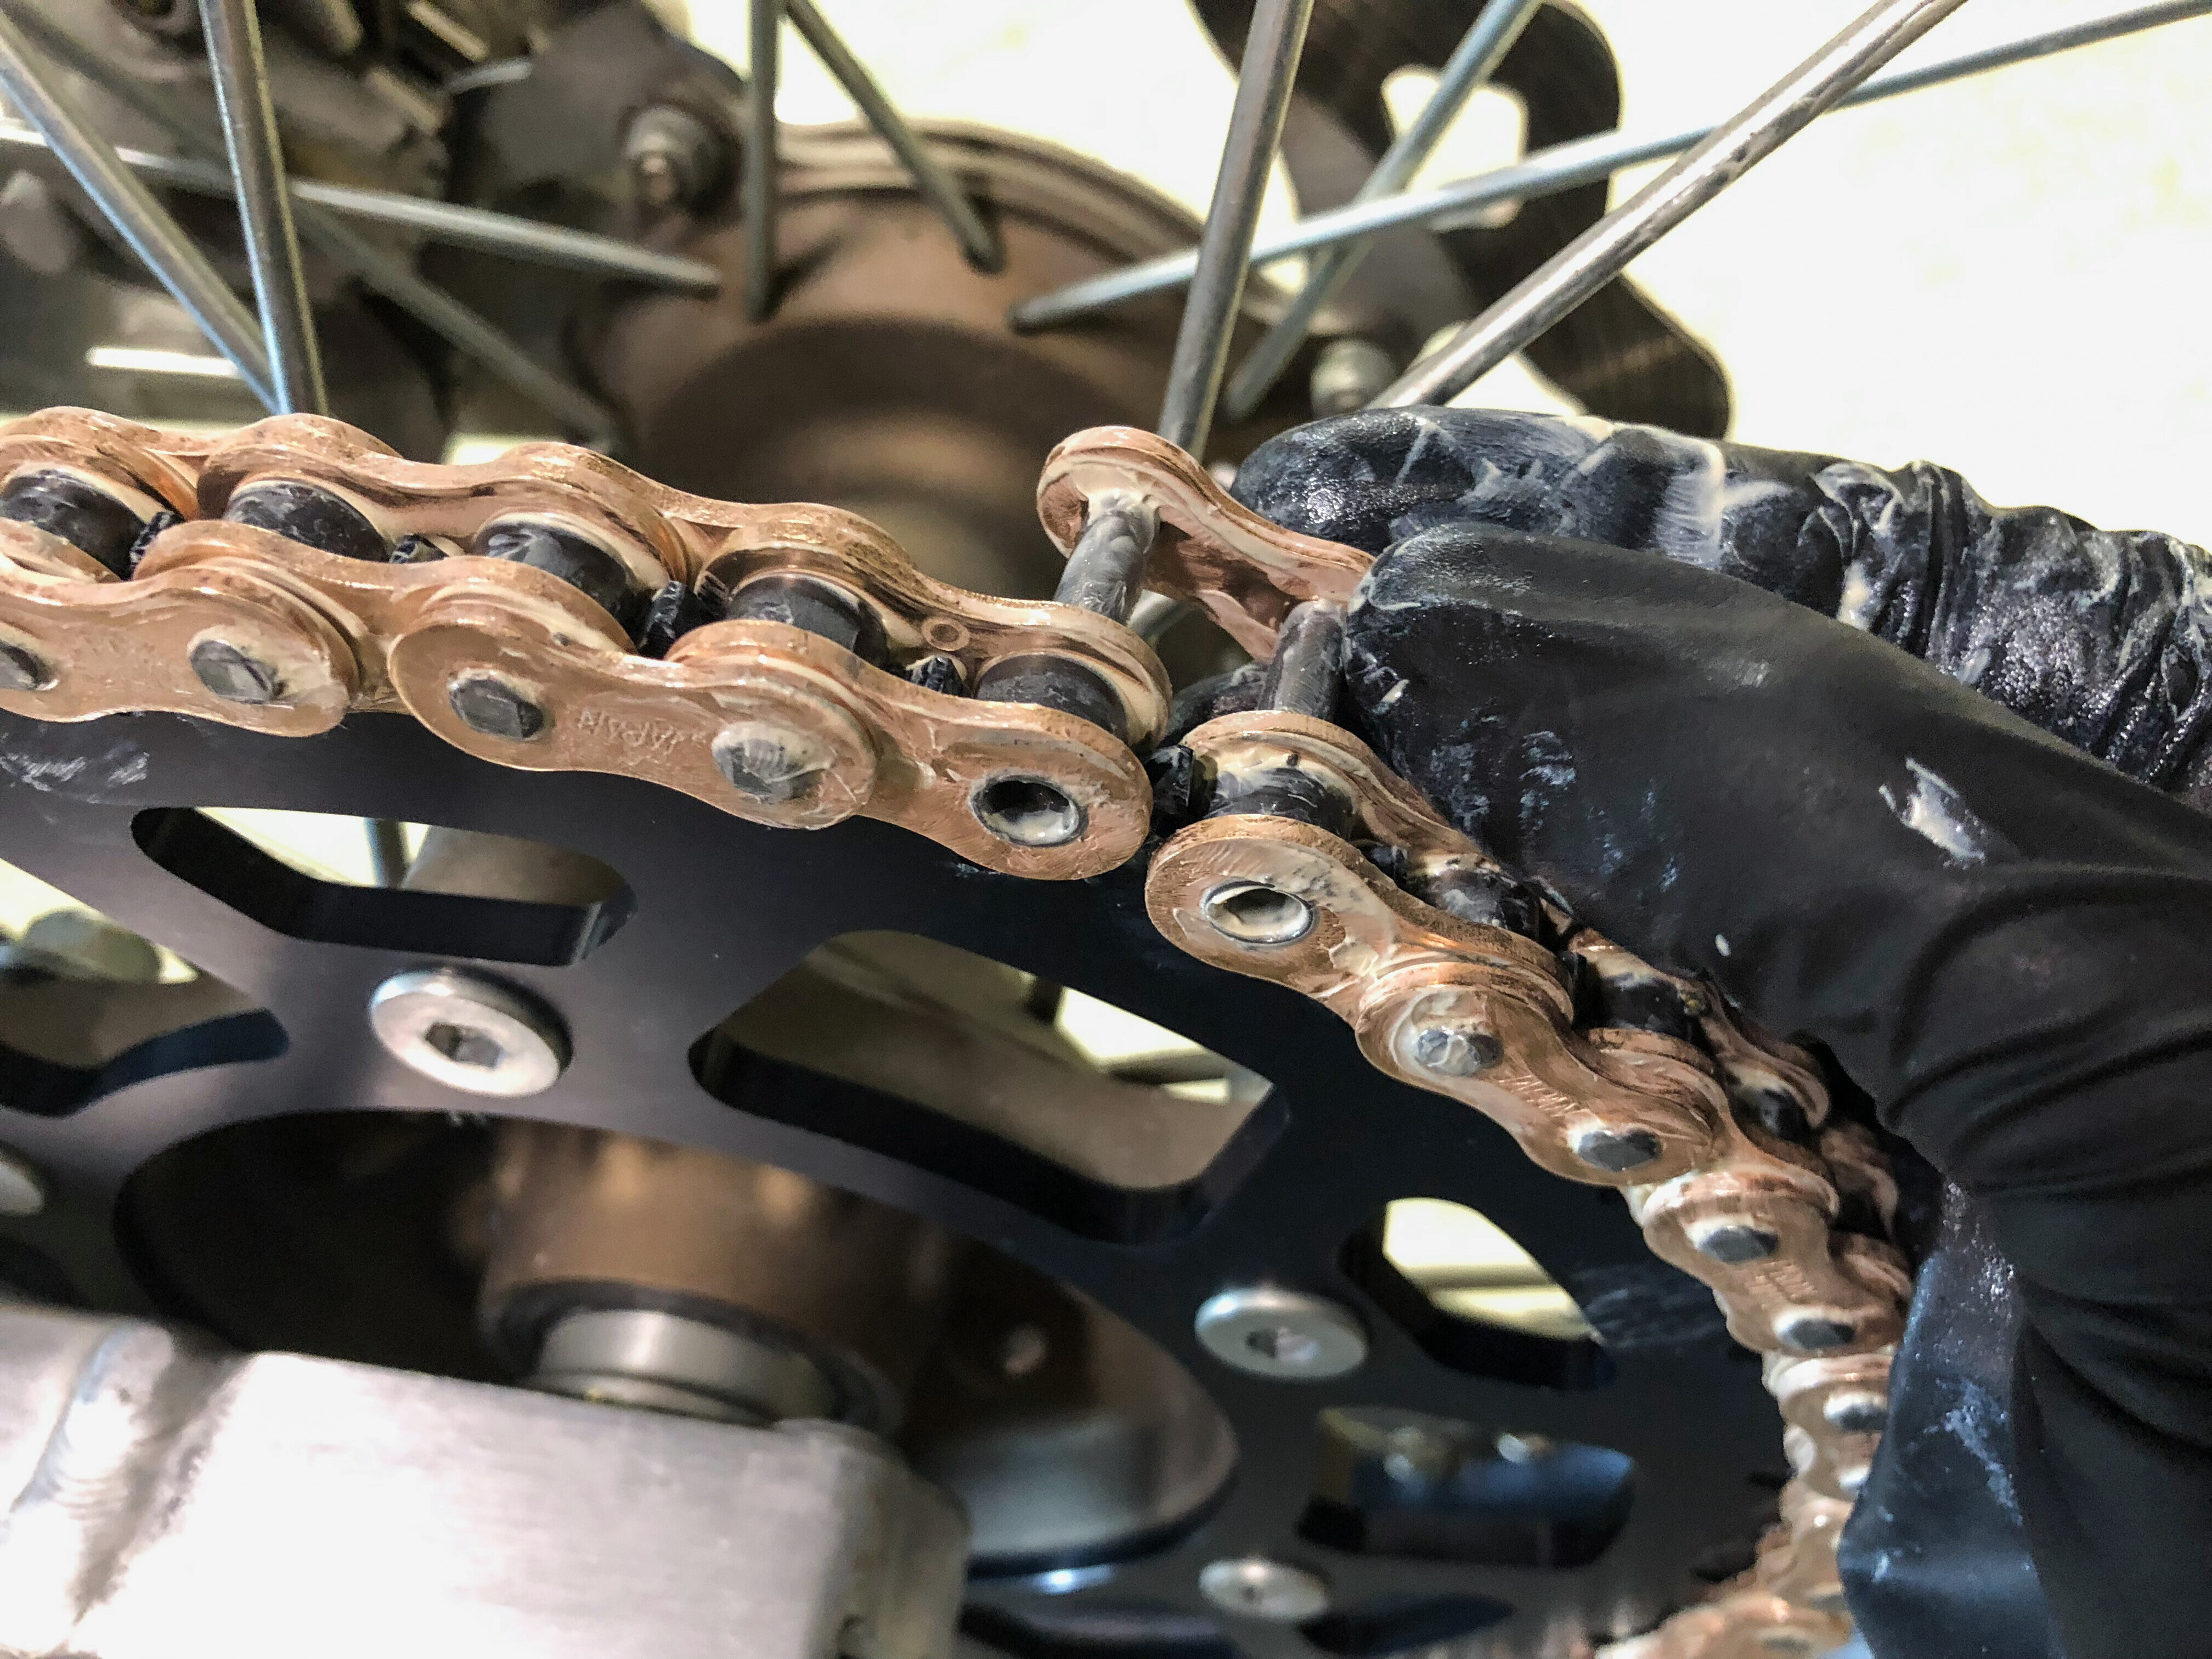 Everything You Need To Know About Installing a New Chain on Your Dirt Bike